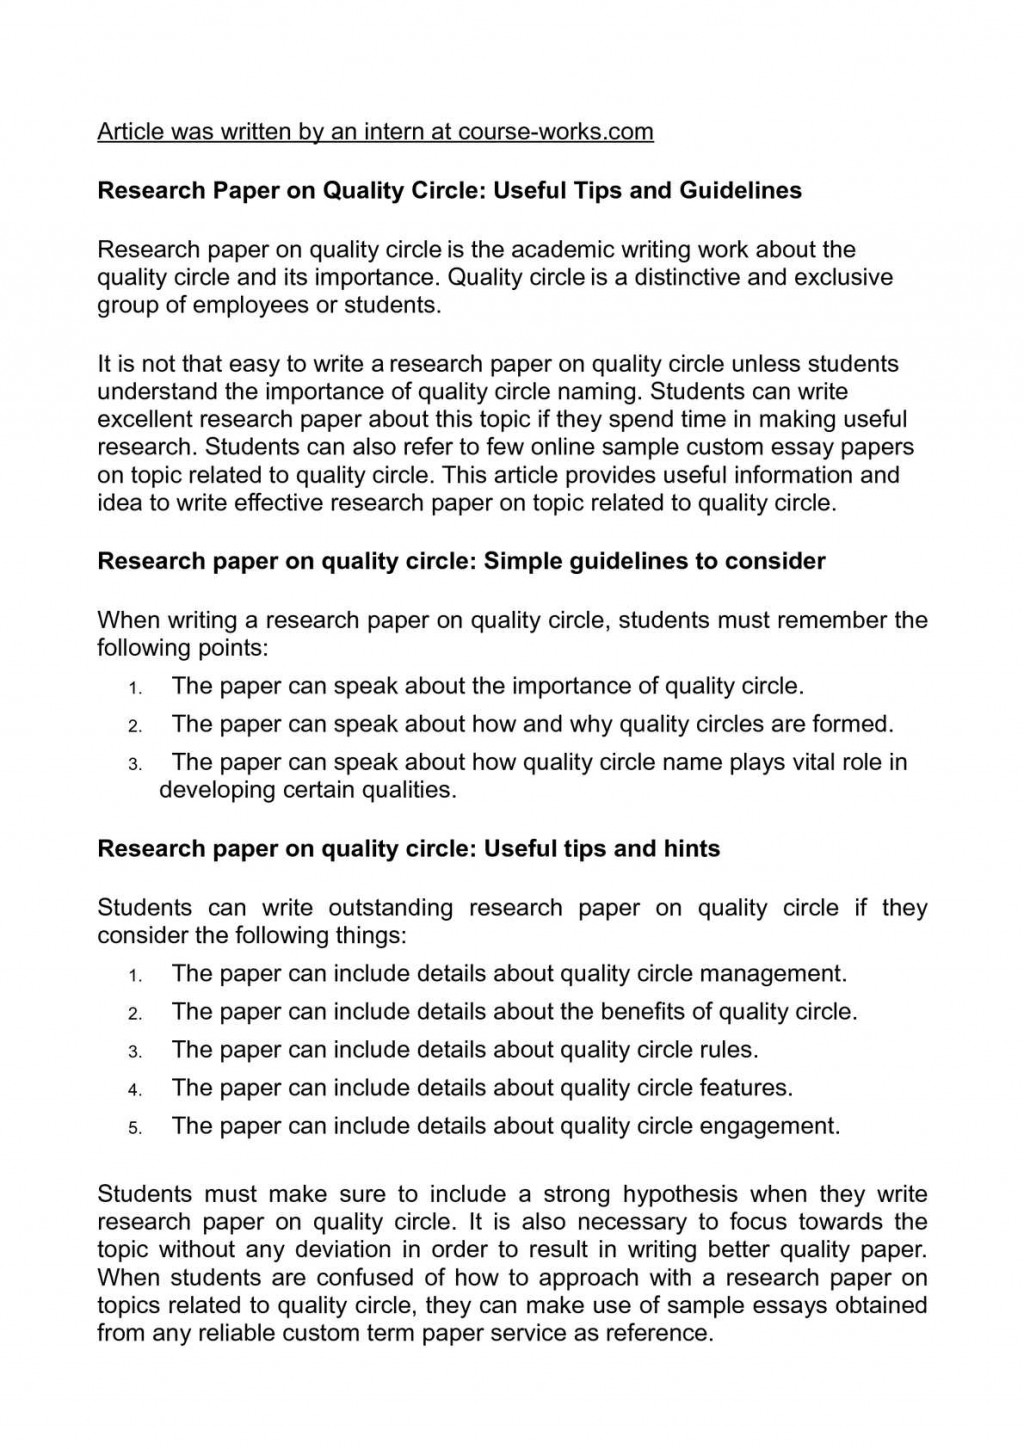 007 P1 Topics To Write Research Paper Beautiful On A Persuasive Essay Your Economics Large